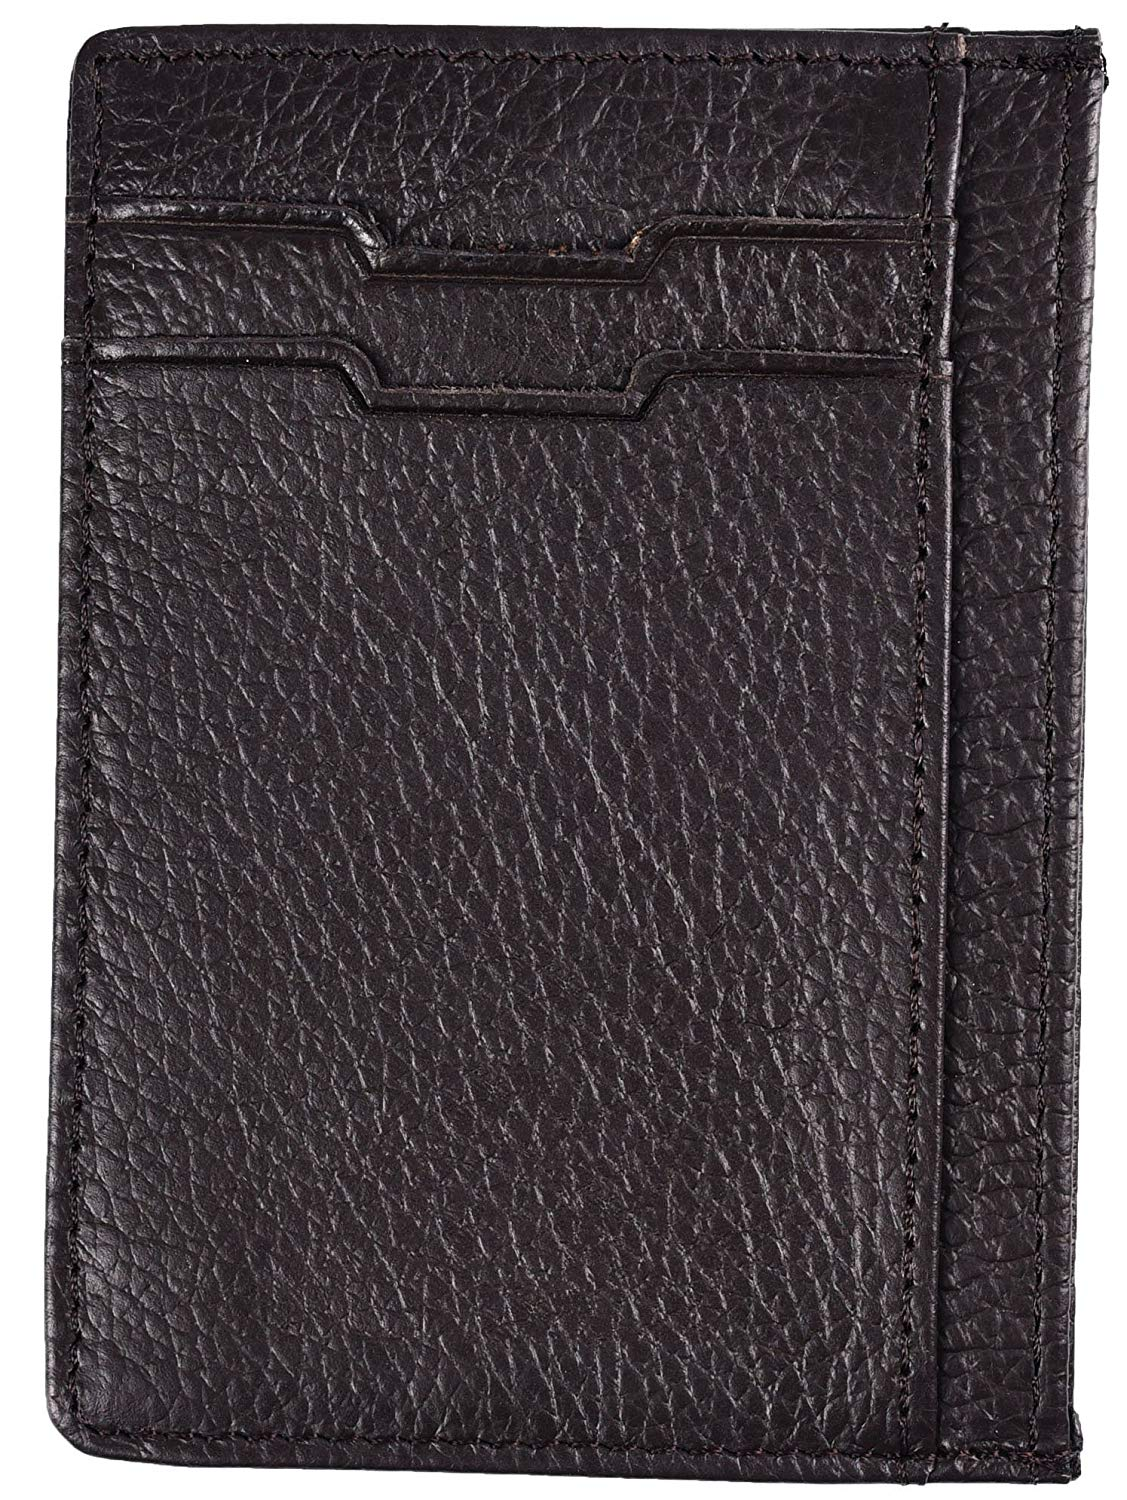 Mens Slim Wallet RFID Blocking Minimalist Genuine Leather Credit Card Holder